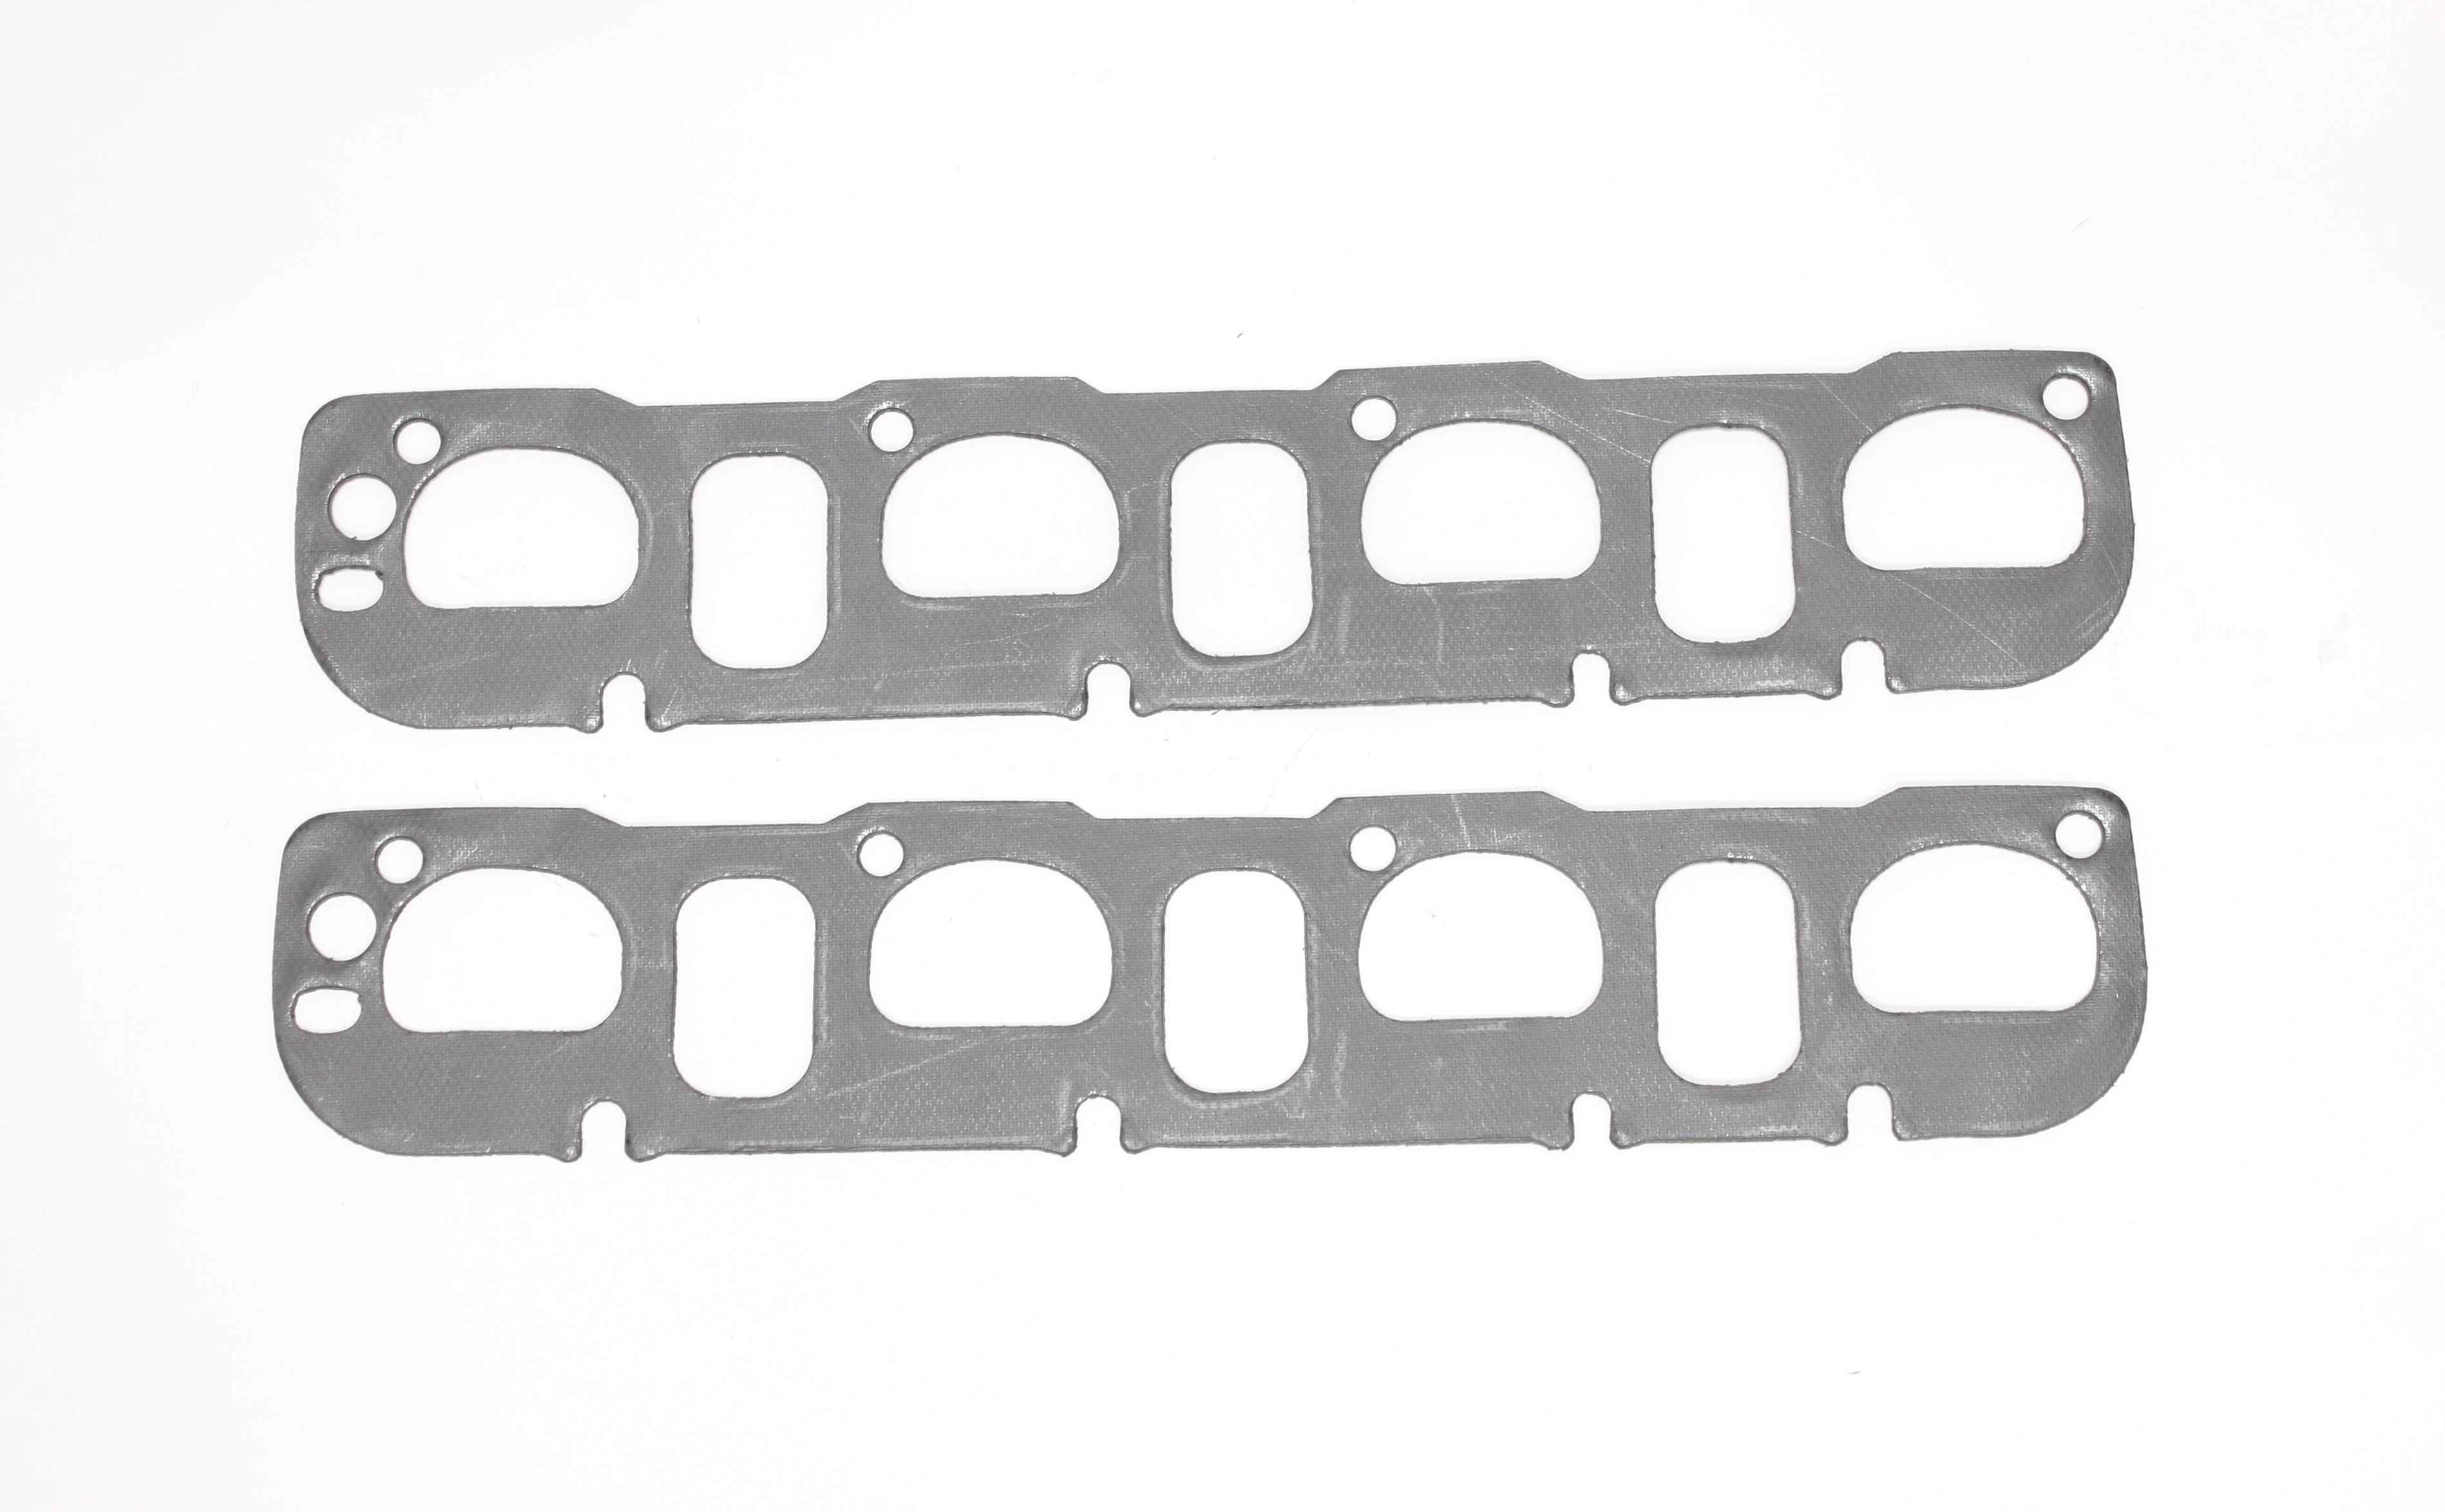 Doug's Headers HG9692 Mopar Hemi 5.7/6.1/6.2/6.4L D-Port Header Flange Gaskets